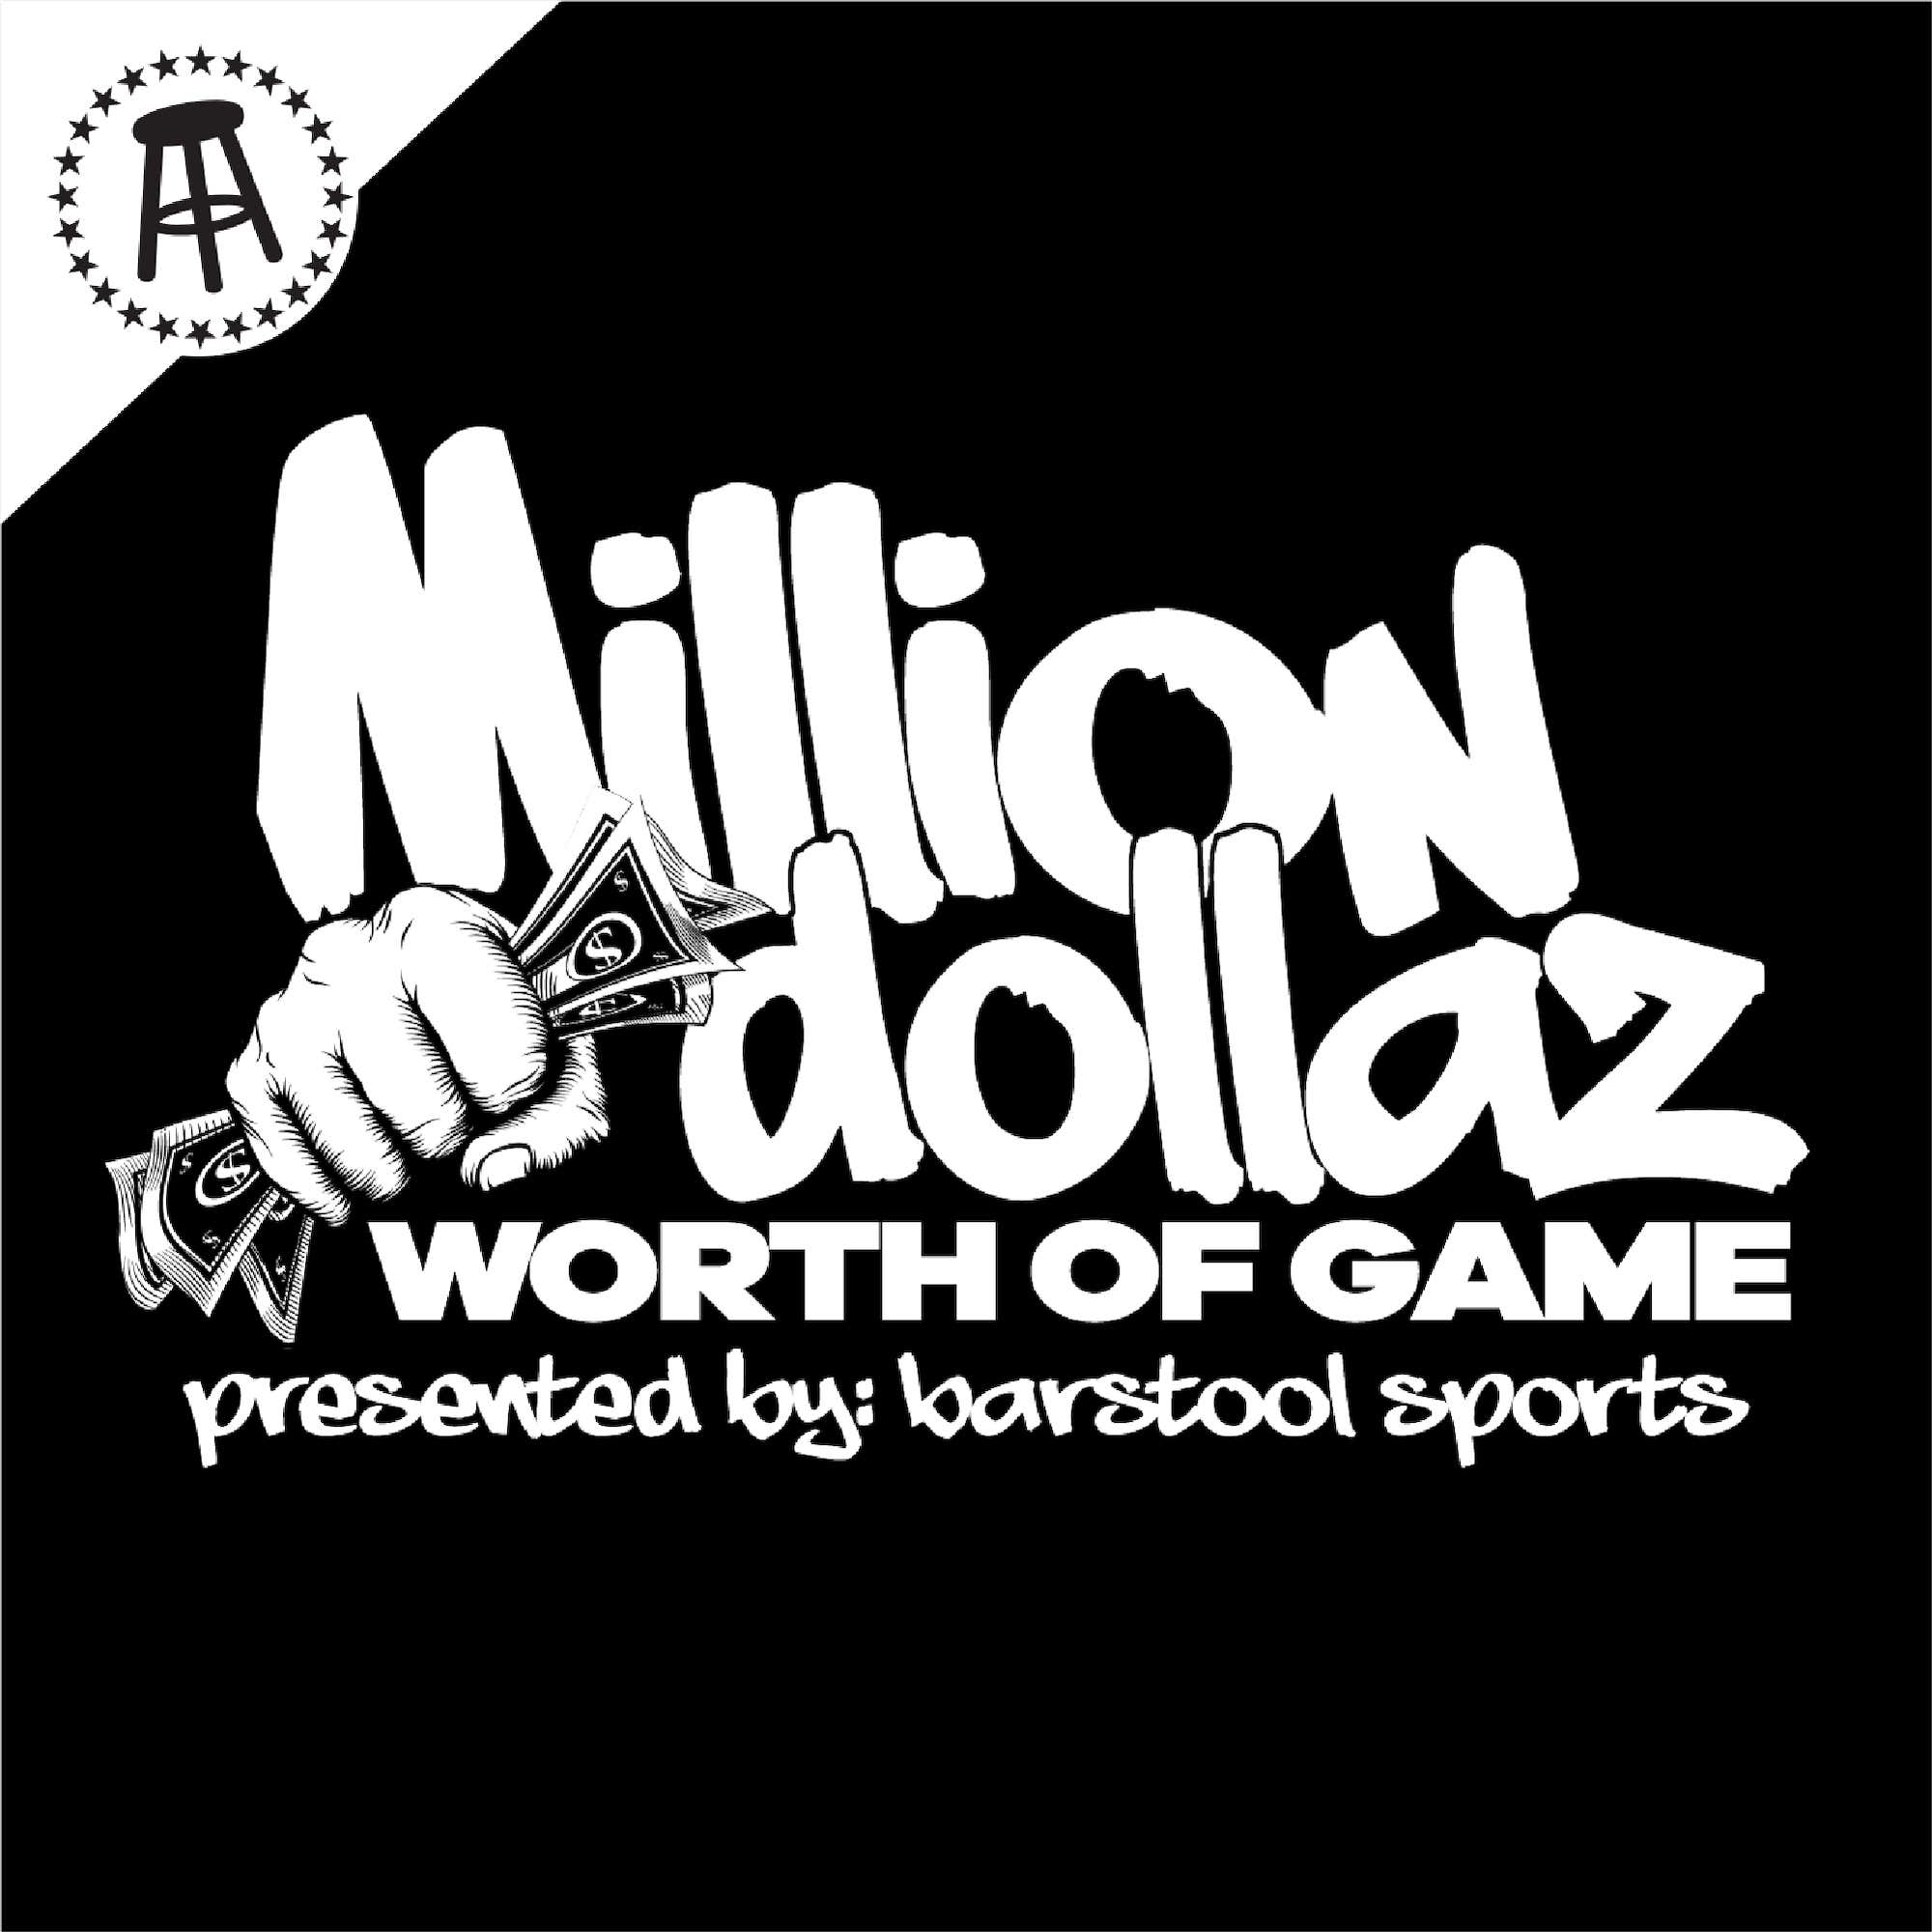 """MILLION DOLLAZ WORTH OF GAME EP:93 """"BANDEMIC ZONE III"""" FEATURING YOUNG THUG"""